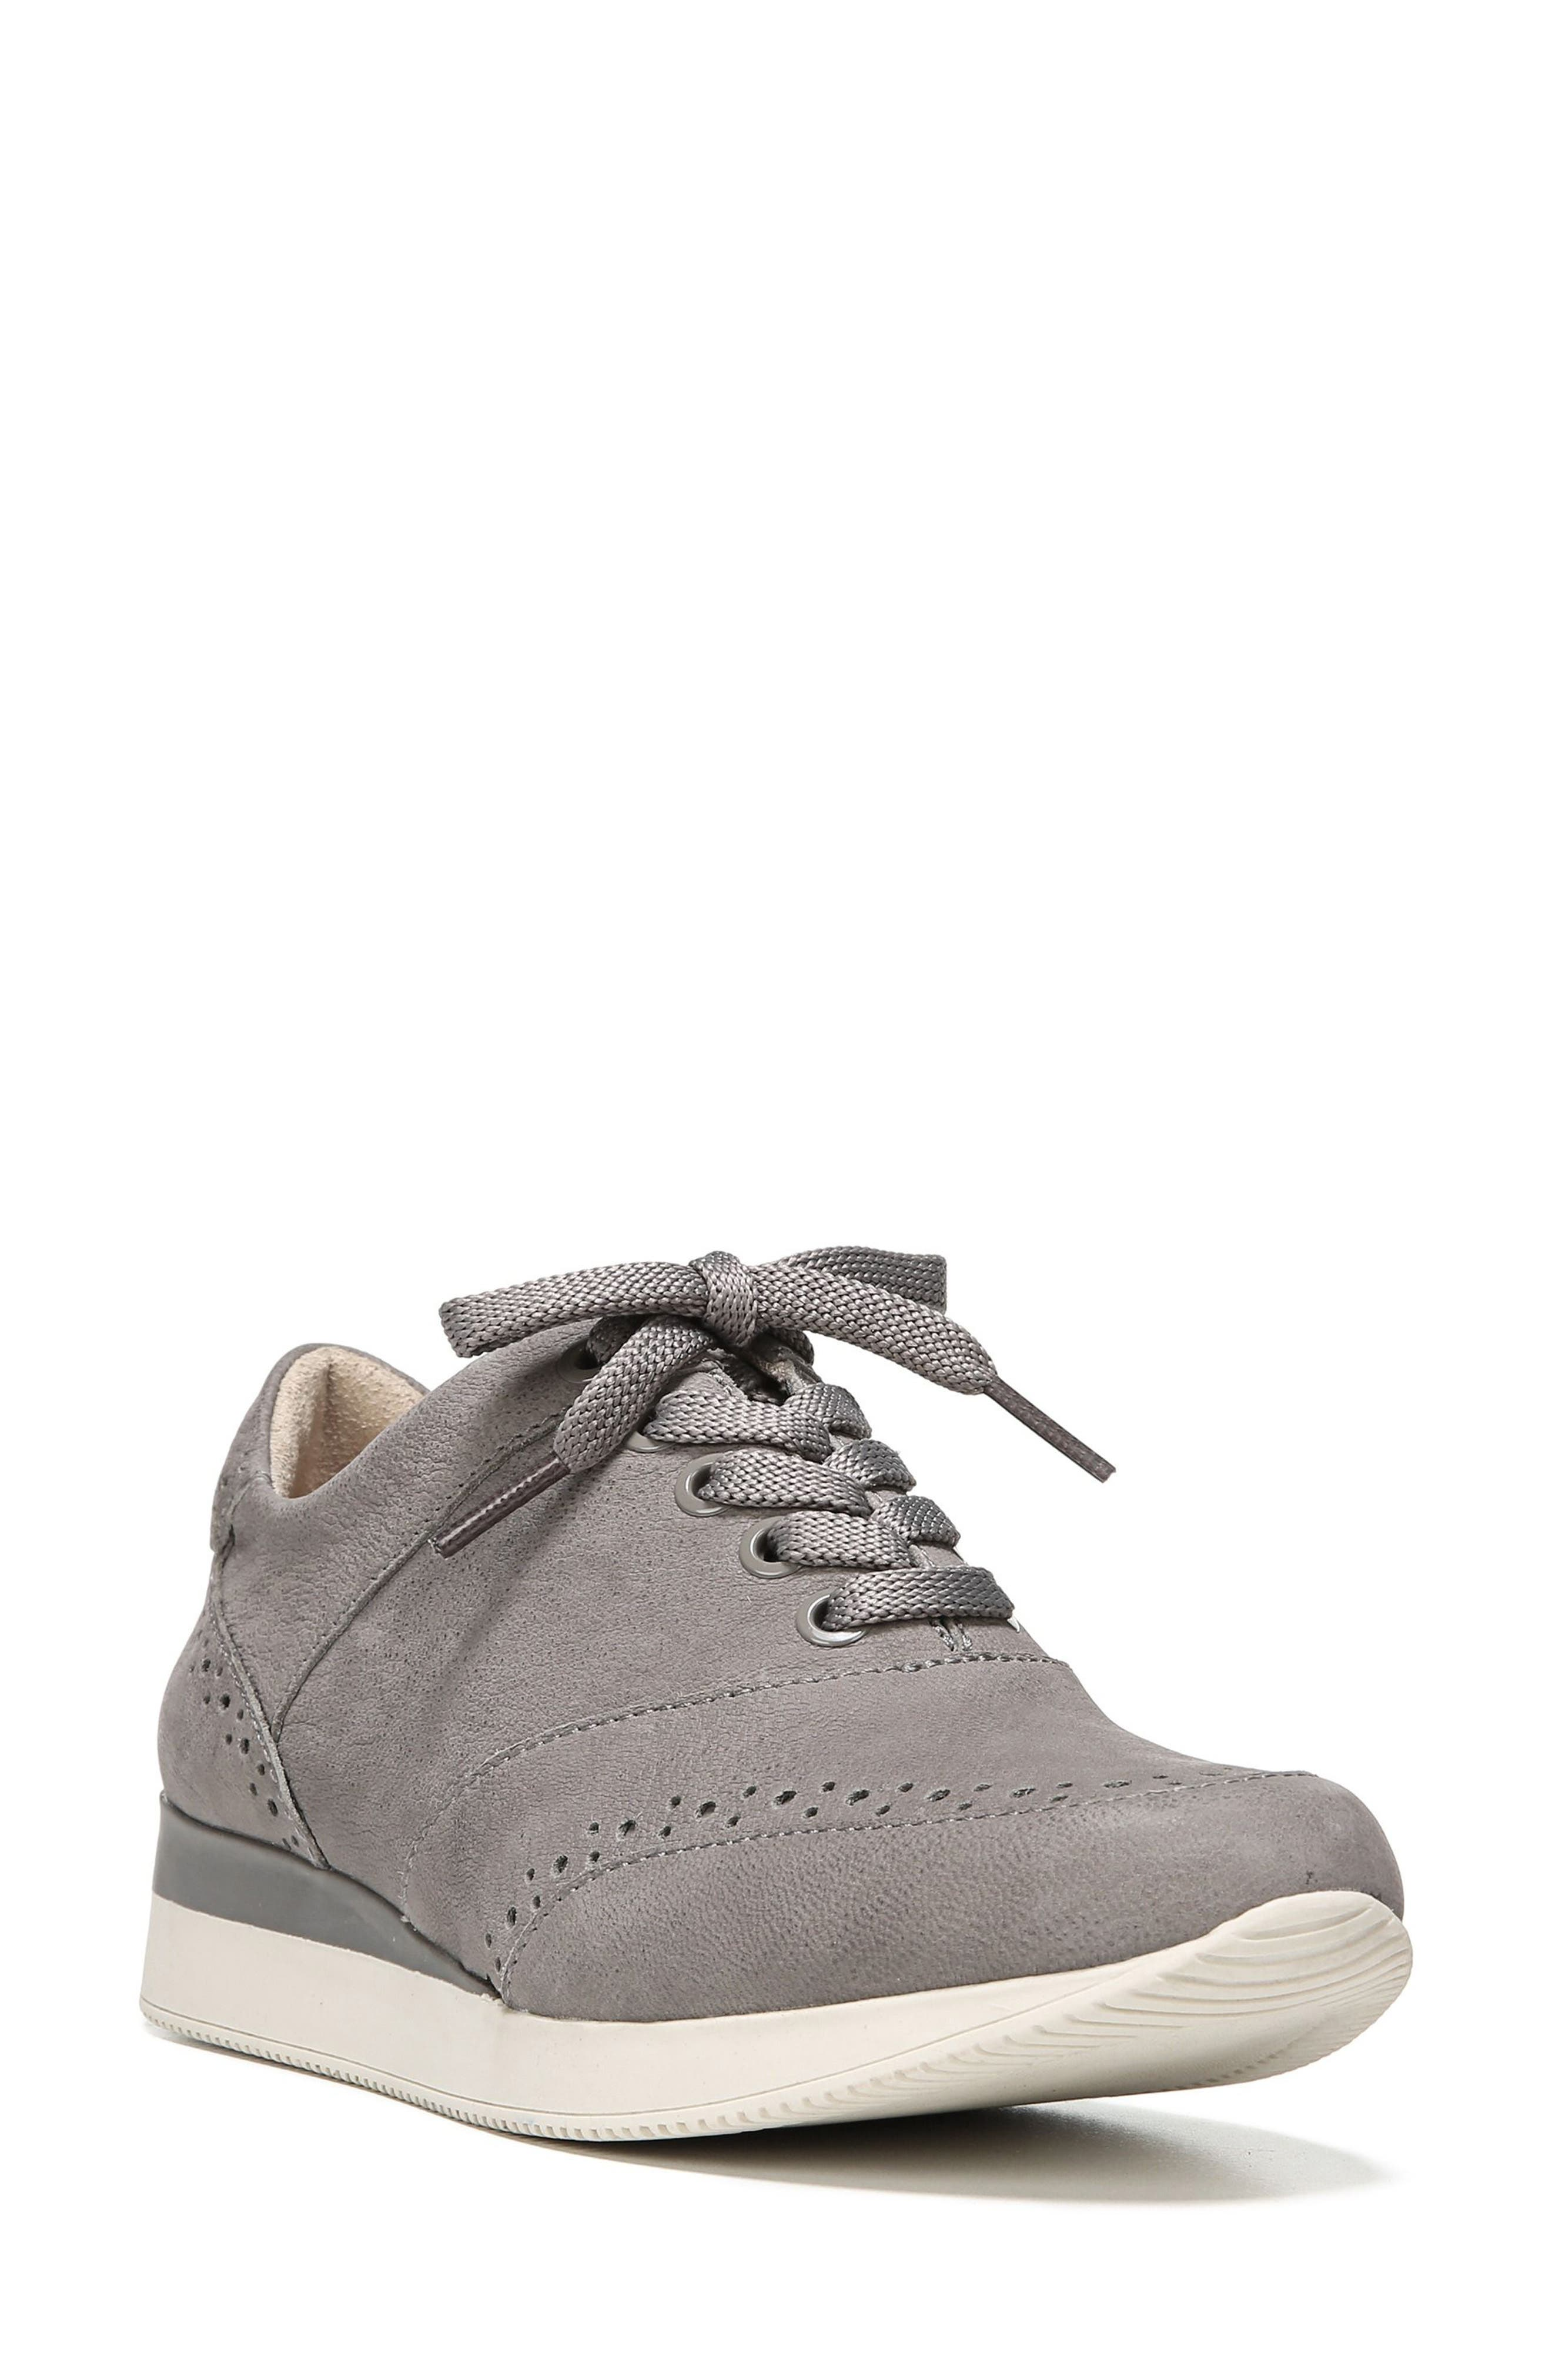 Jimi 2 Perforated Sneaker,                         Main,                         color, Modern Grey Nubuck Leather